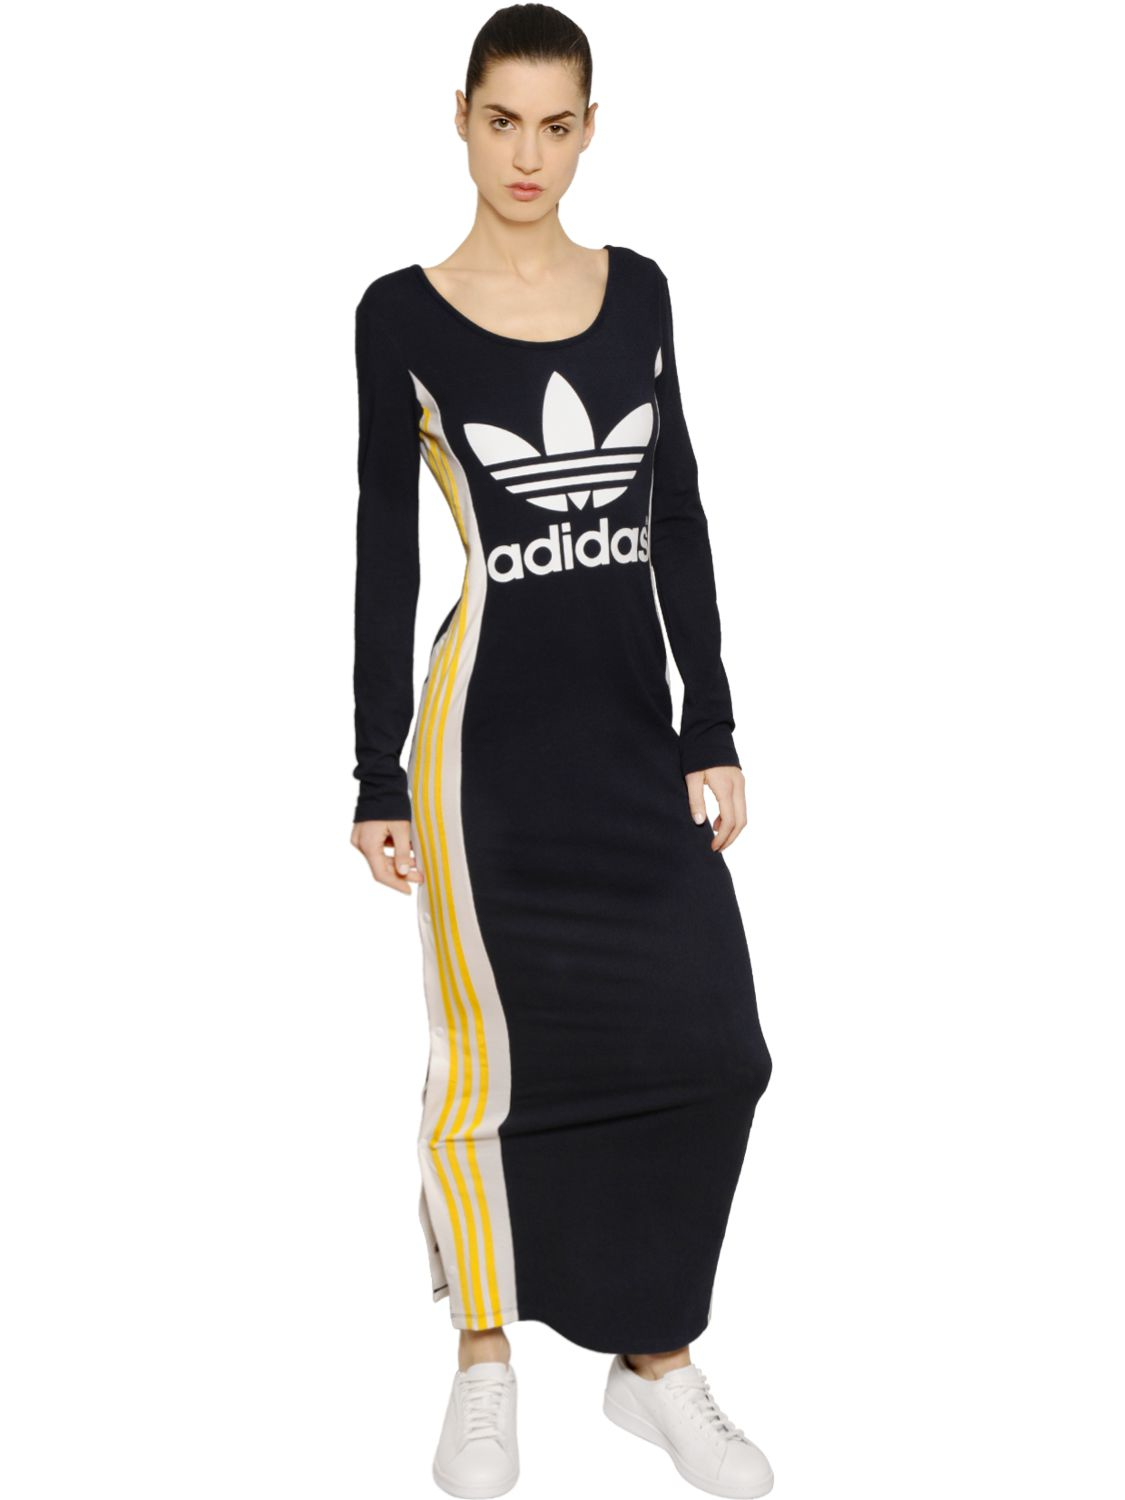 9ac9f16c0ba1 adidas Originals Cosmic Confession Cotton Jersey Dress in Blue - Lyst